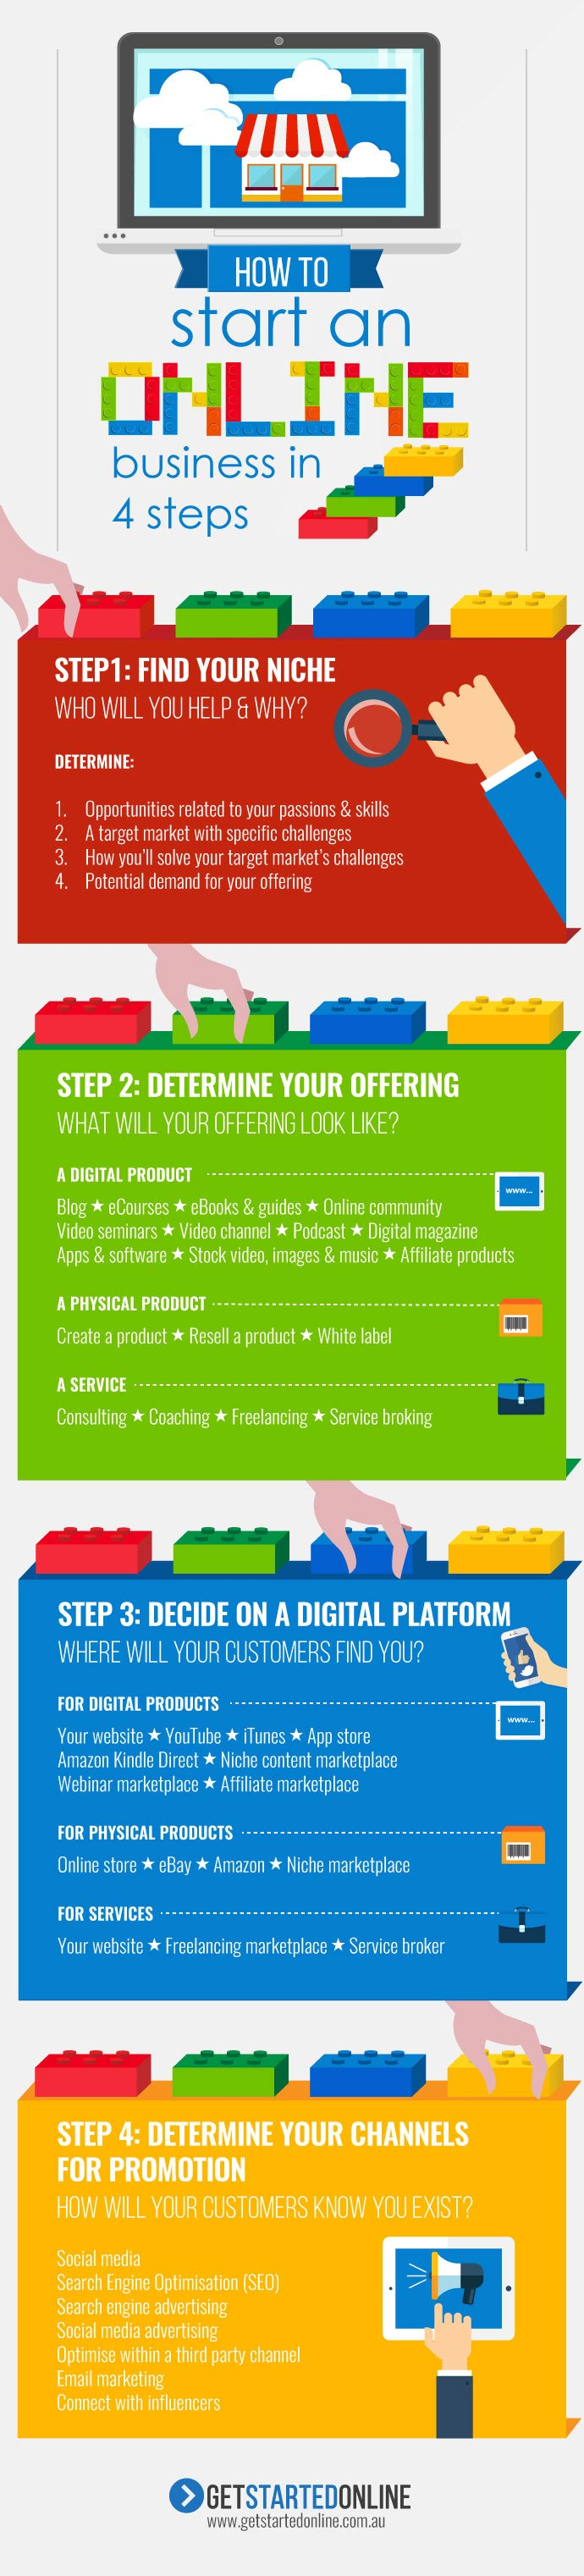 How to start an online business in 4 steps infographic